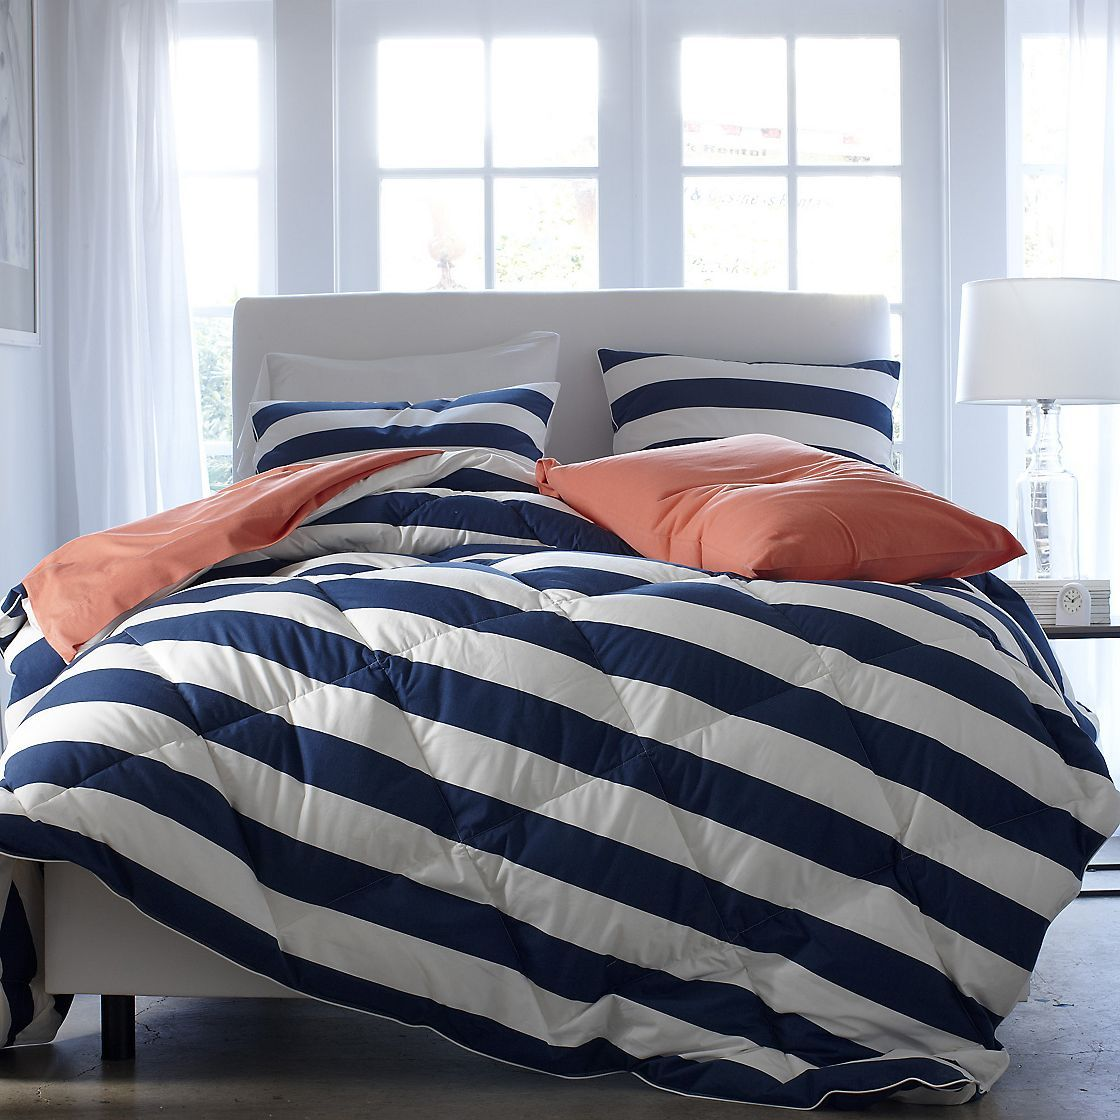 Image of: Blue and White Bedding Sets Strip